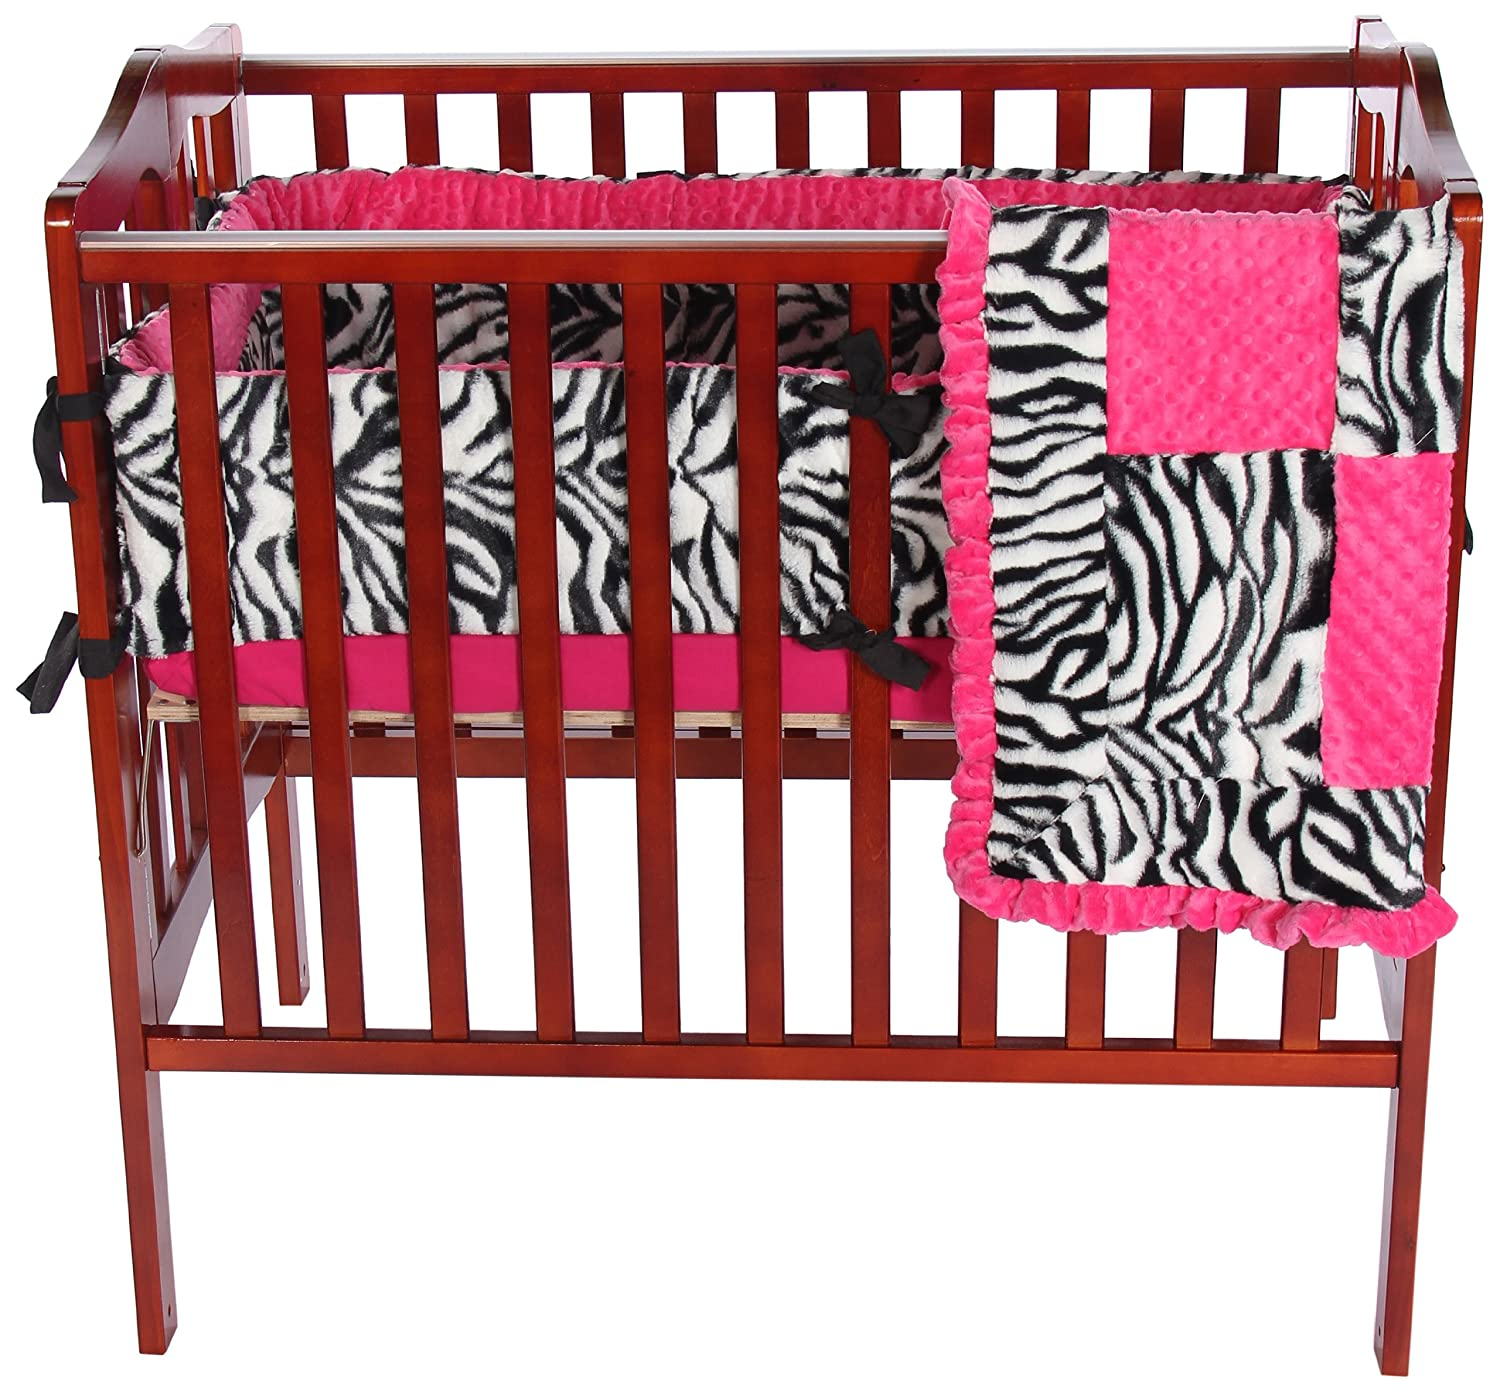 Baby Doll Bedding Zebra Minky Mini Crib/ Port-a-Crib Bedding Set, Pink 8950pac